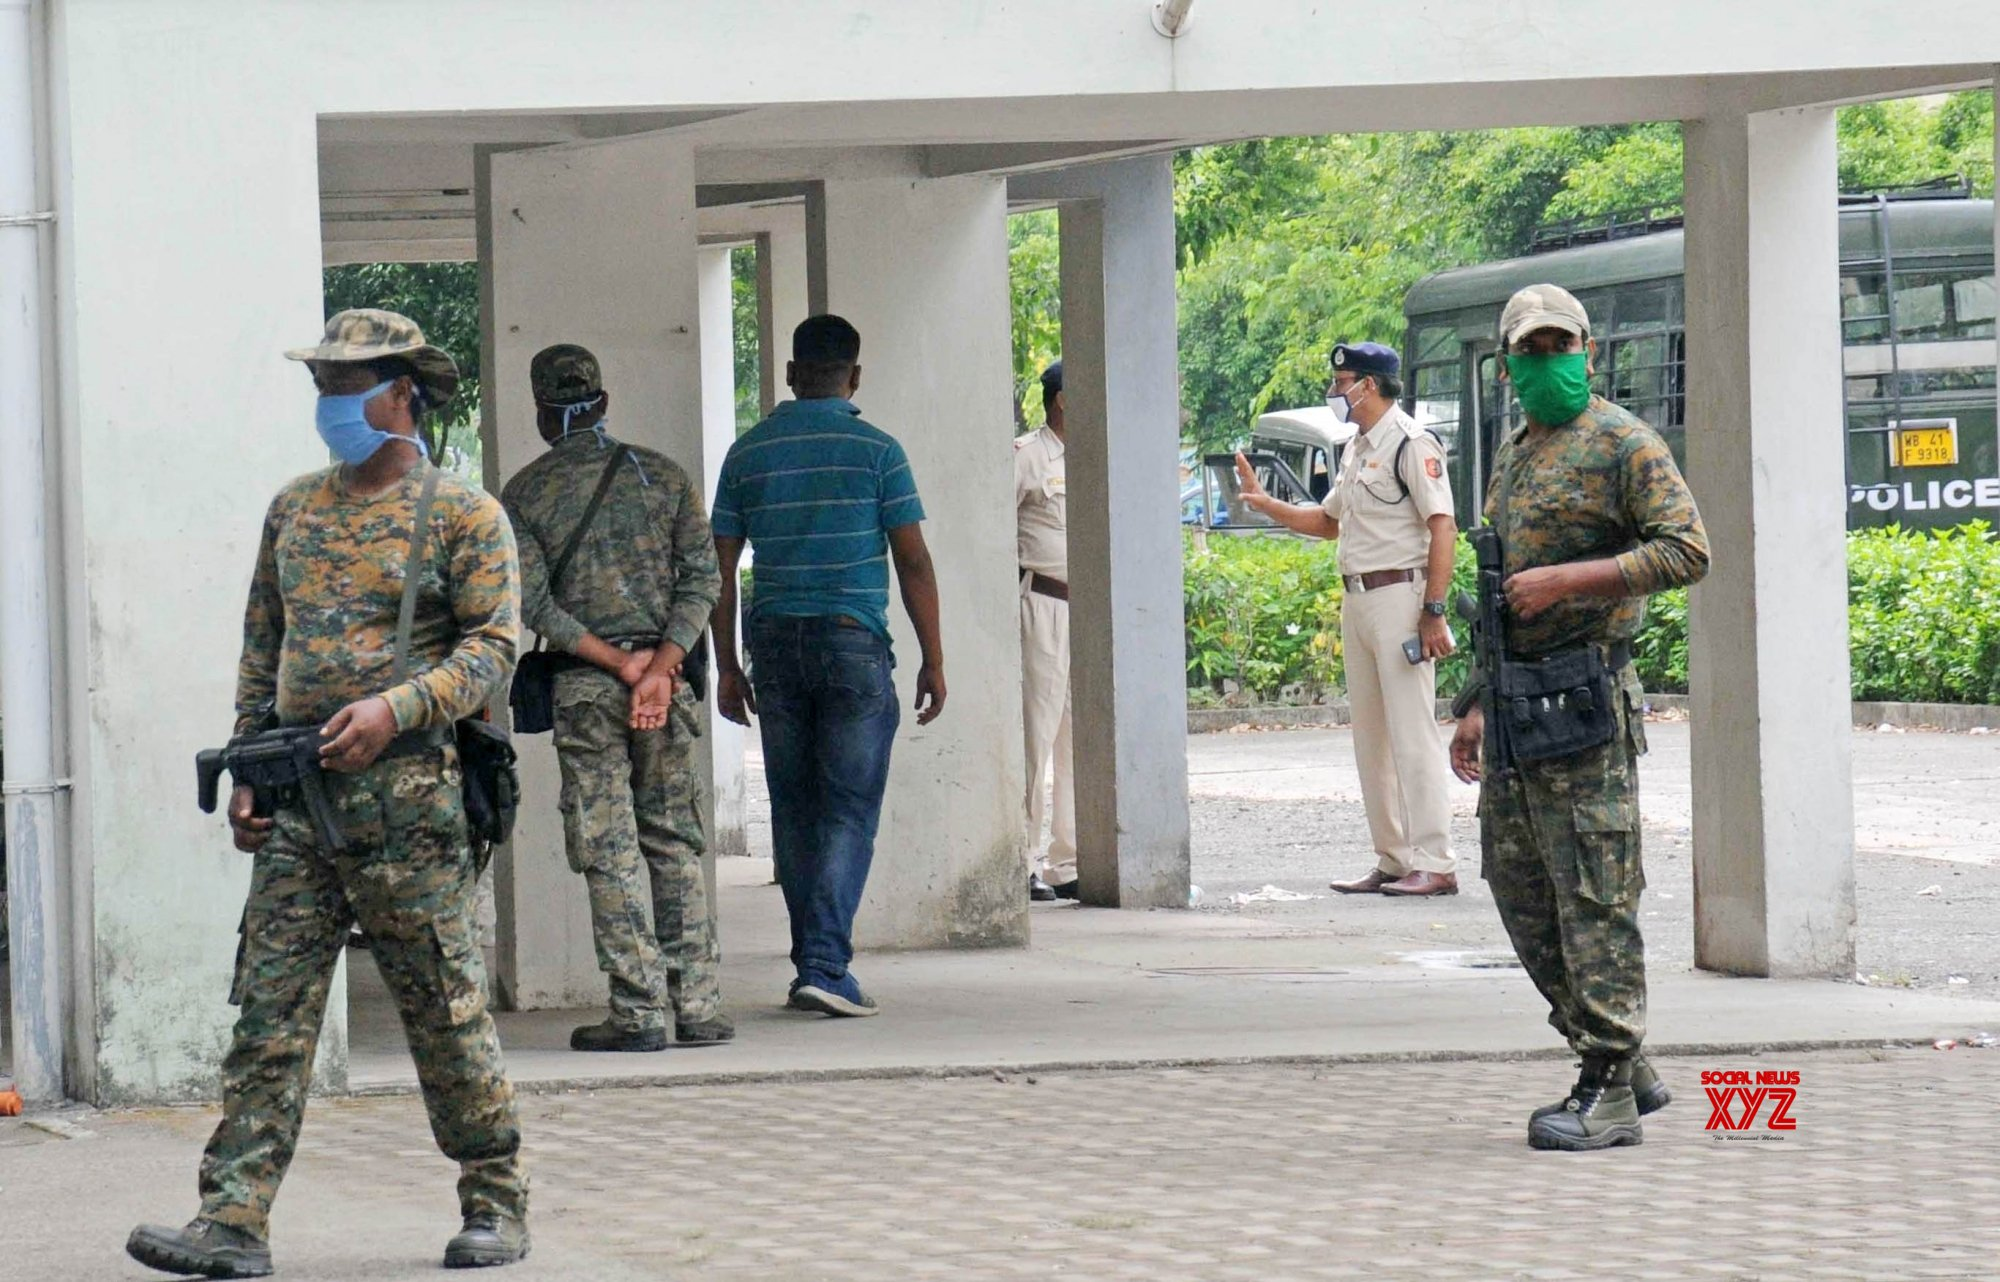 Kolkata: Security personnel are on high alert after two history - sheeters from Punjab killed in shootout with police and STF yesterday in Kolkata. #Gallery